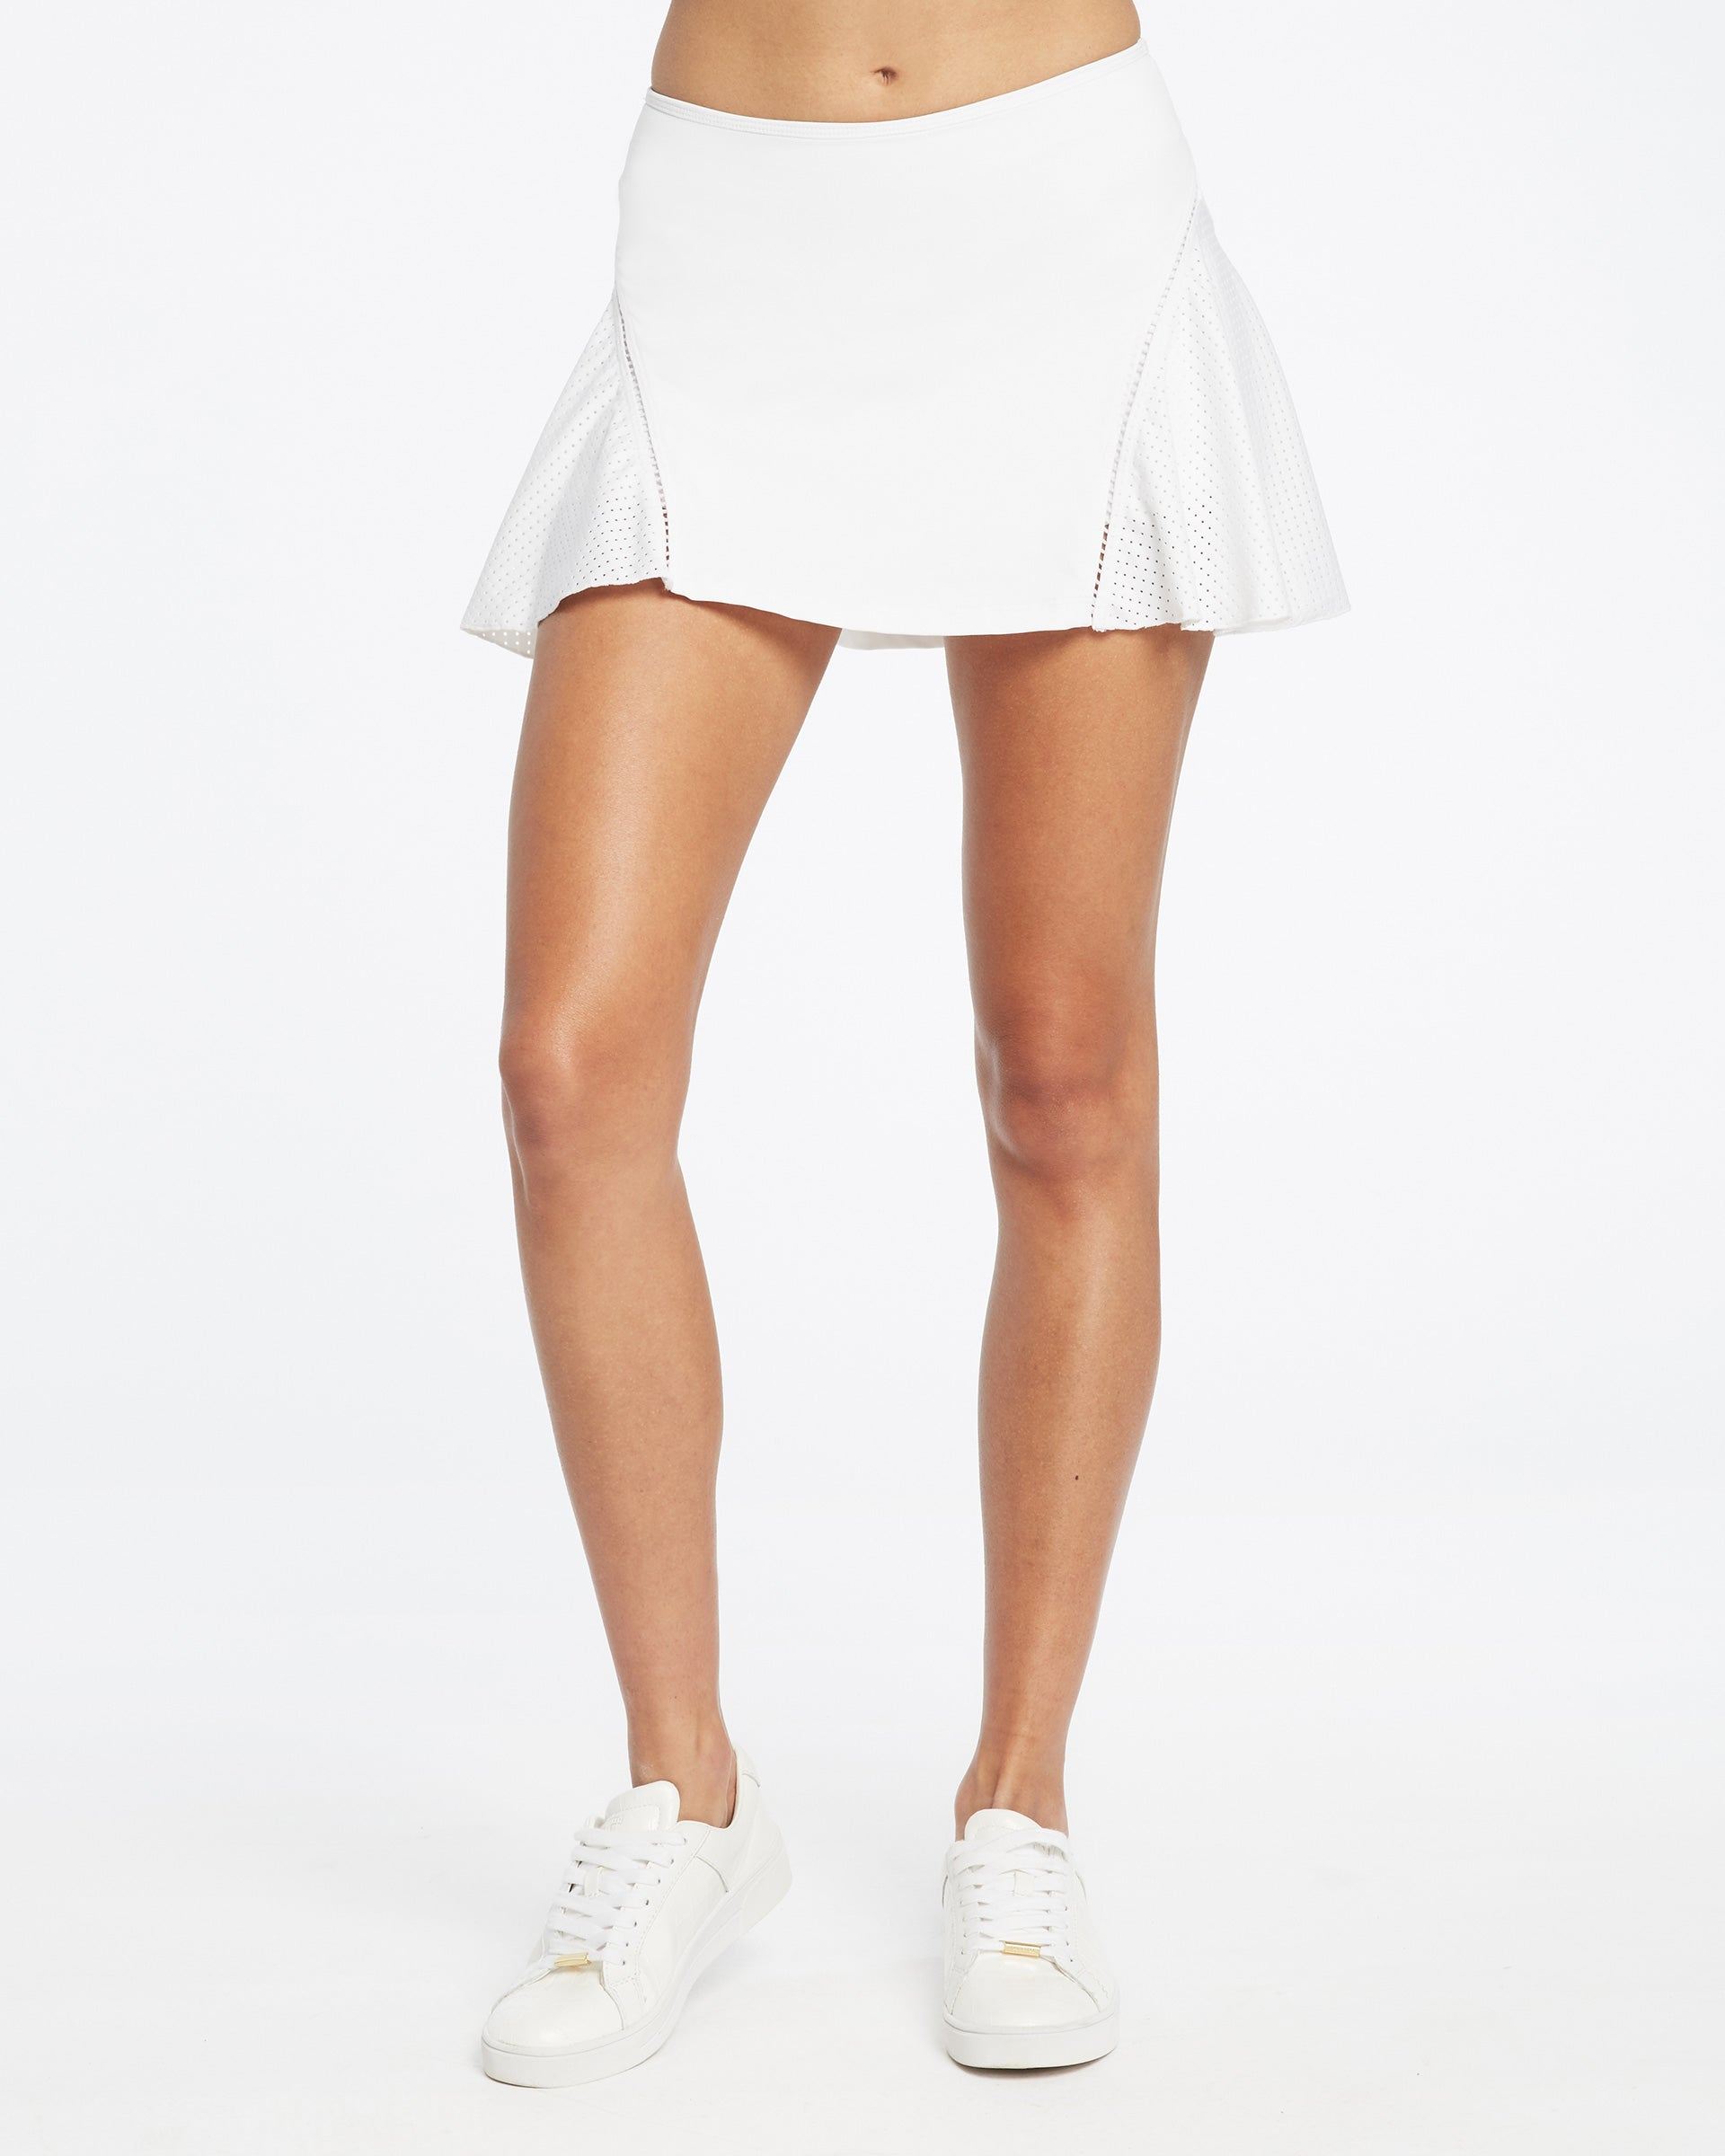 1-Love Tennis Skirt - White